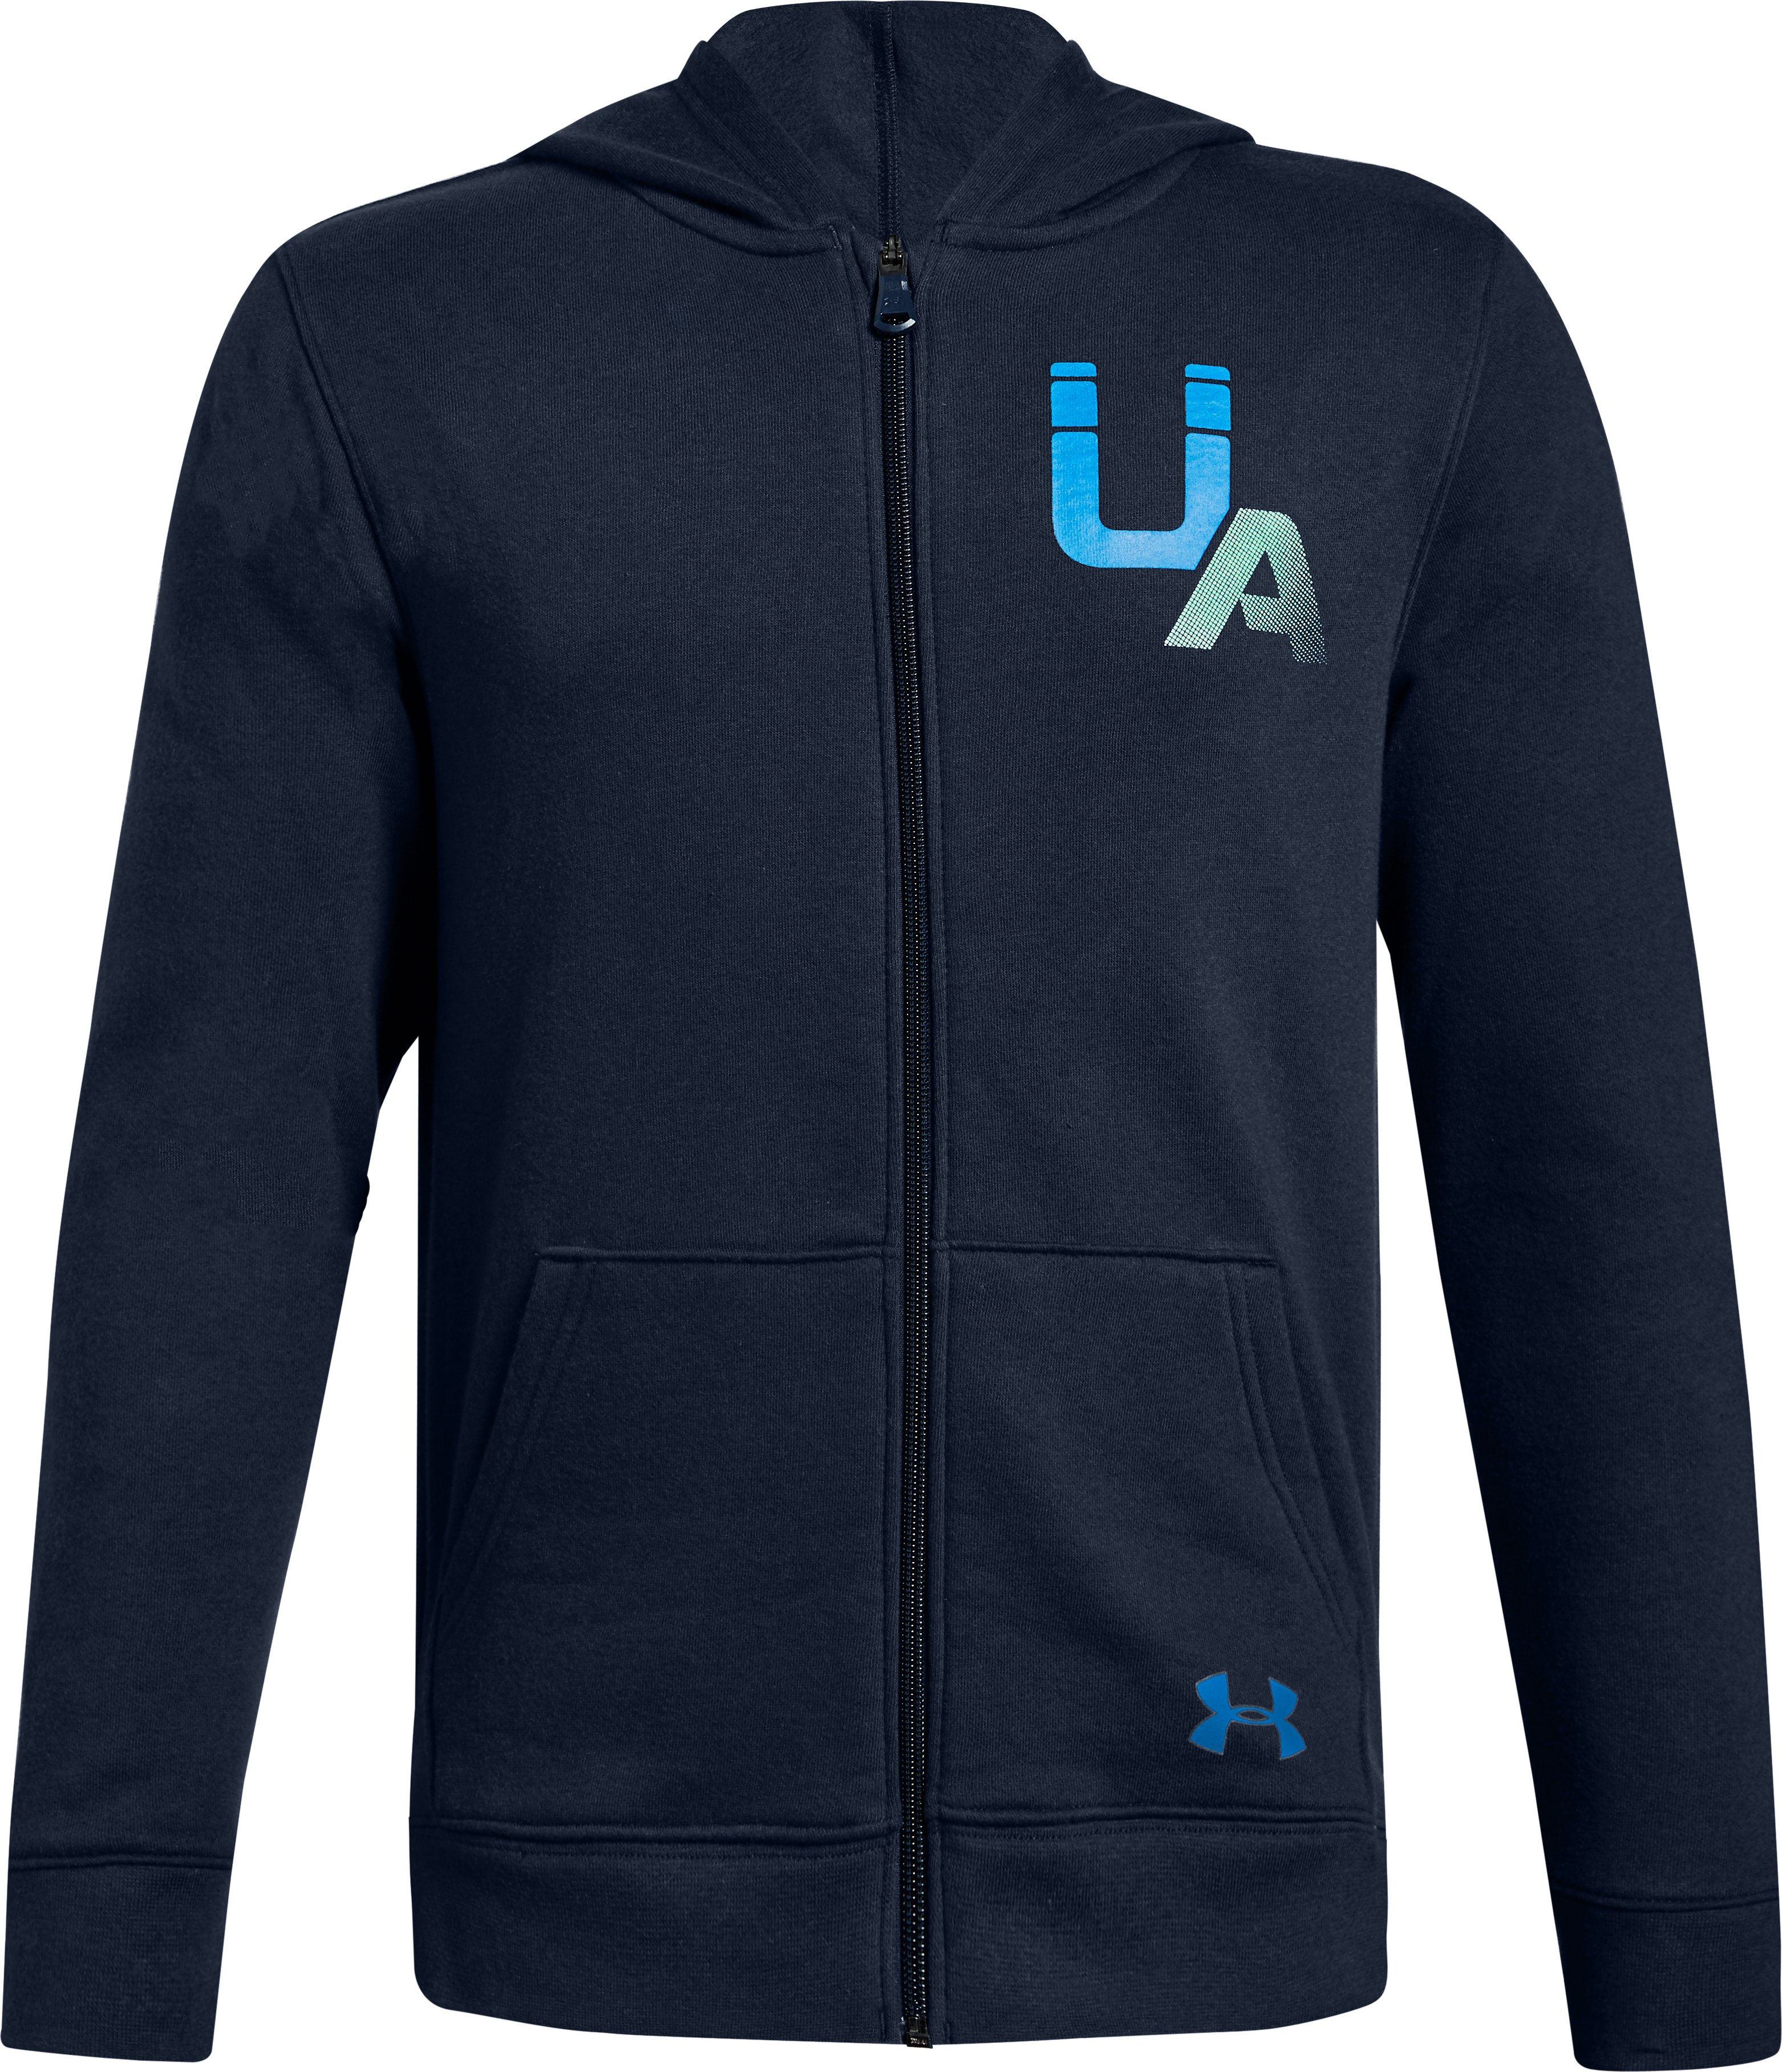 Boys' UA Rival Logo Full Zip, Academy, , Academy, Click to view full size